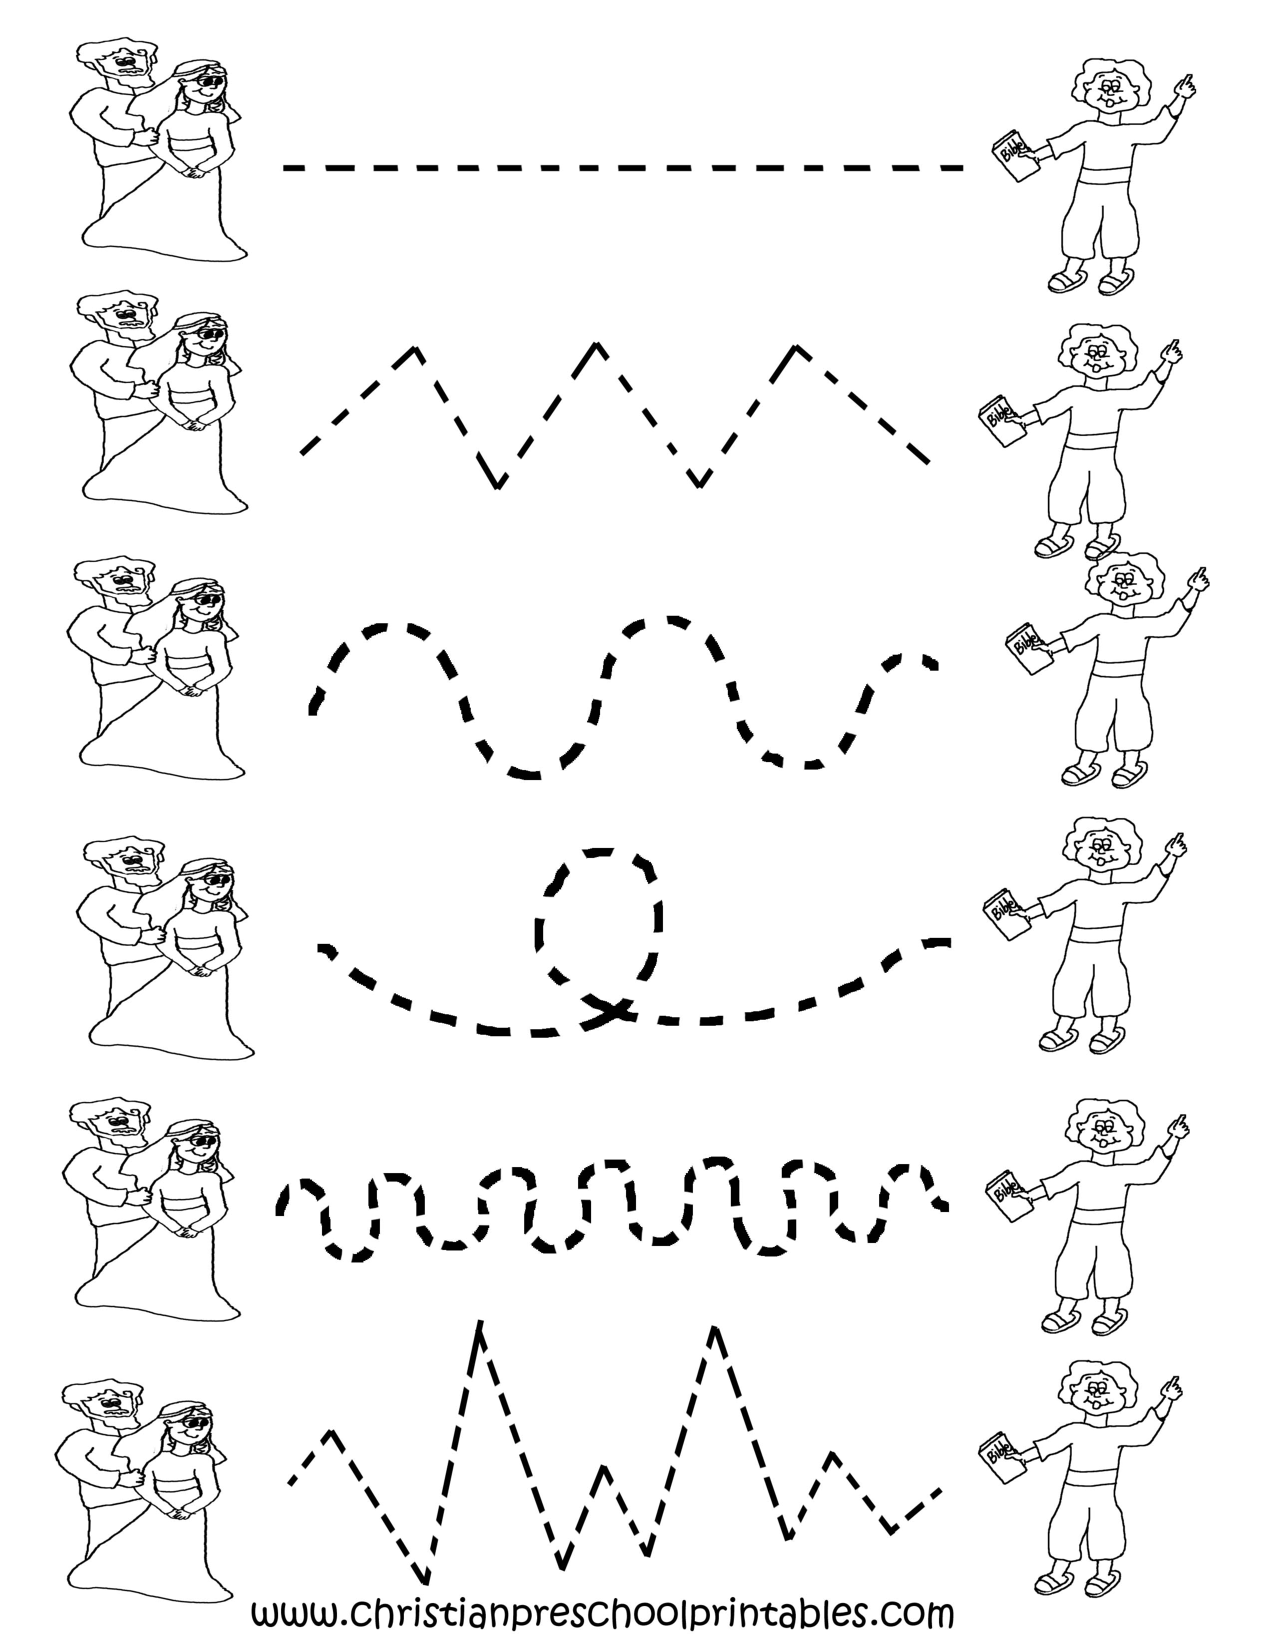 Worksheet Tracing Printable Worksheets 1000 images about worksheets on pinterest fine motor preschool and printable numbers